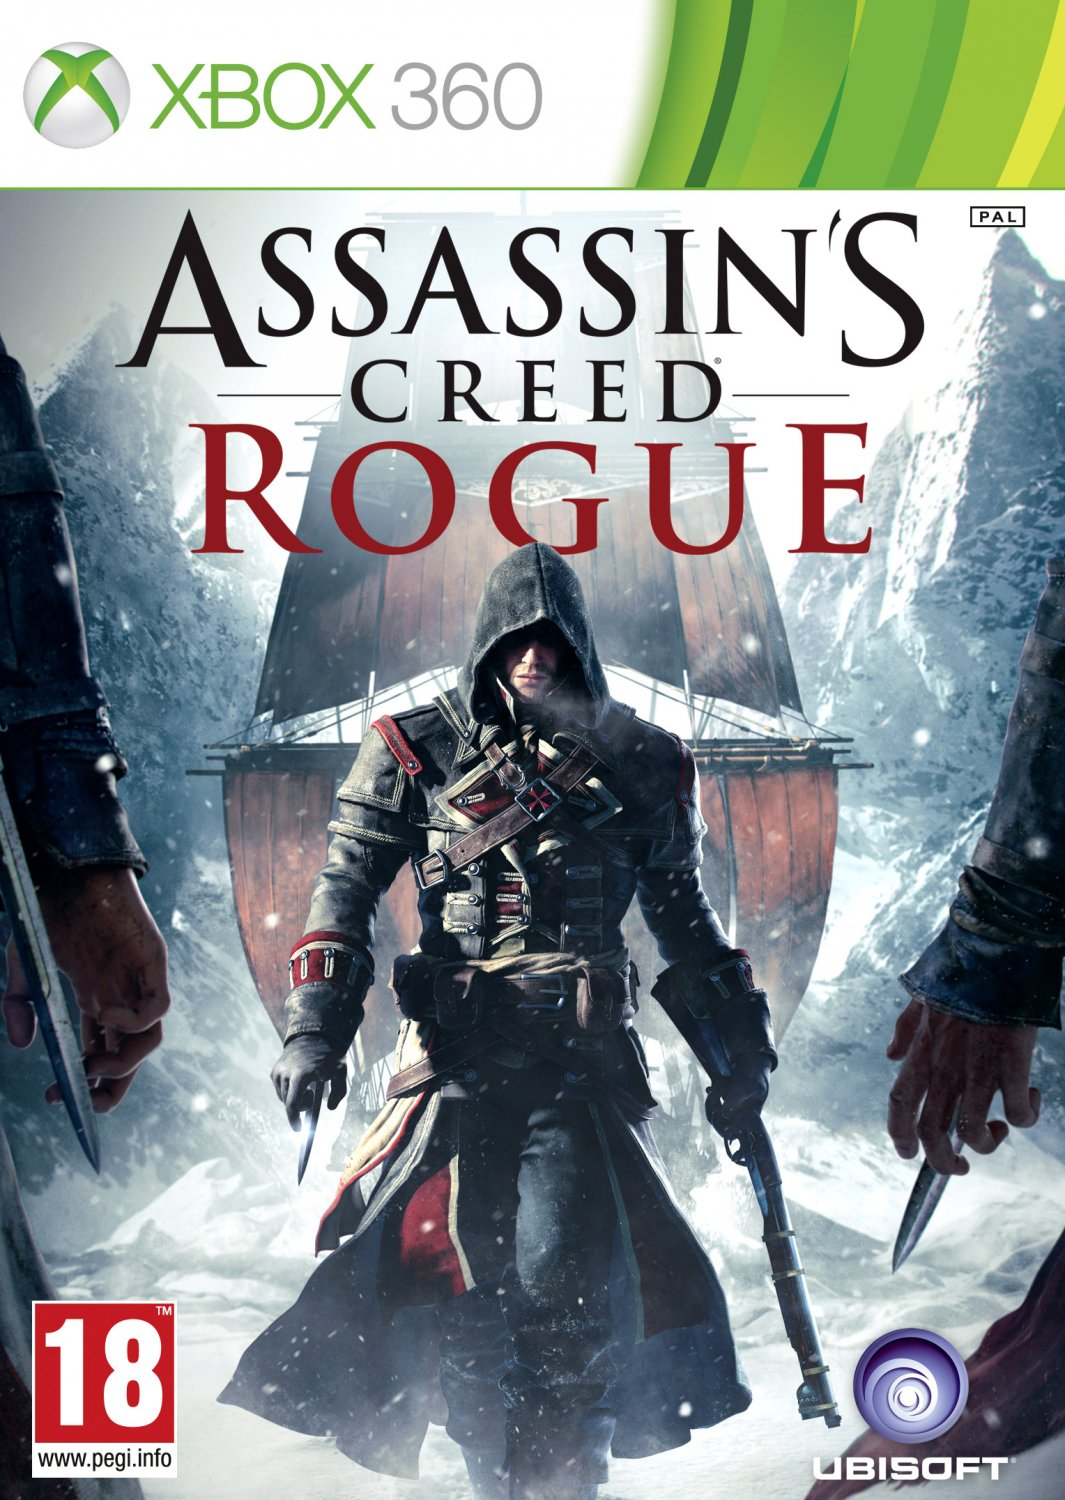 Assassin's Creed Rogue Xbox 360 Physical Game Disc US